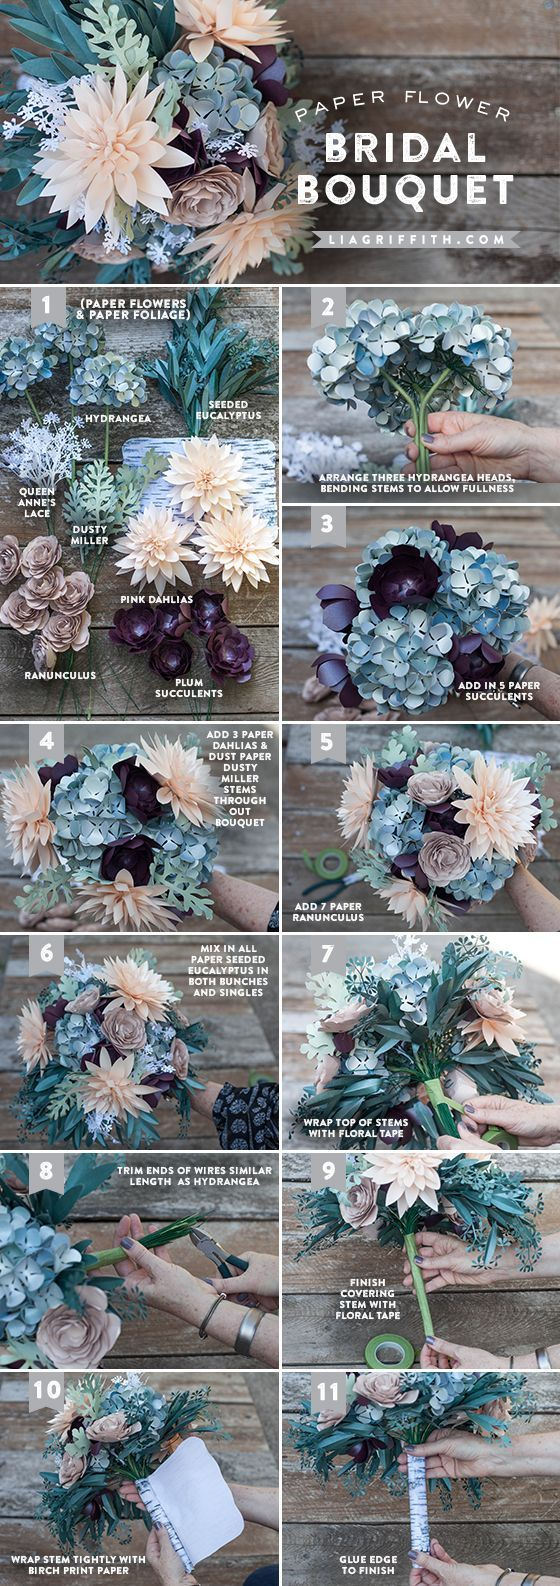 Make this paper rustic bridal bouquet with a glue gun, paper and a cricut explorer. Step by step instructions to make your own rustic paper bouquet.